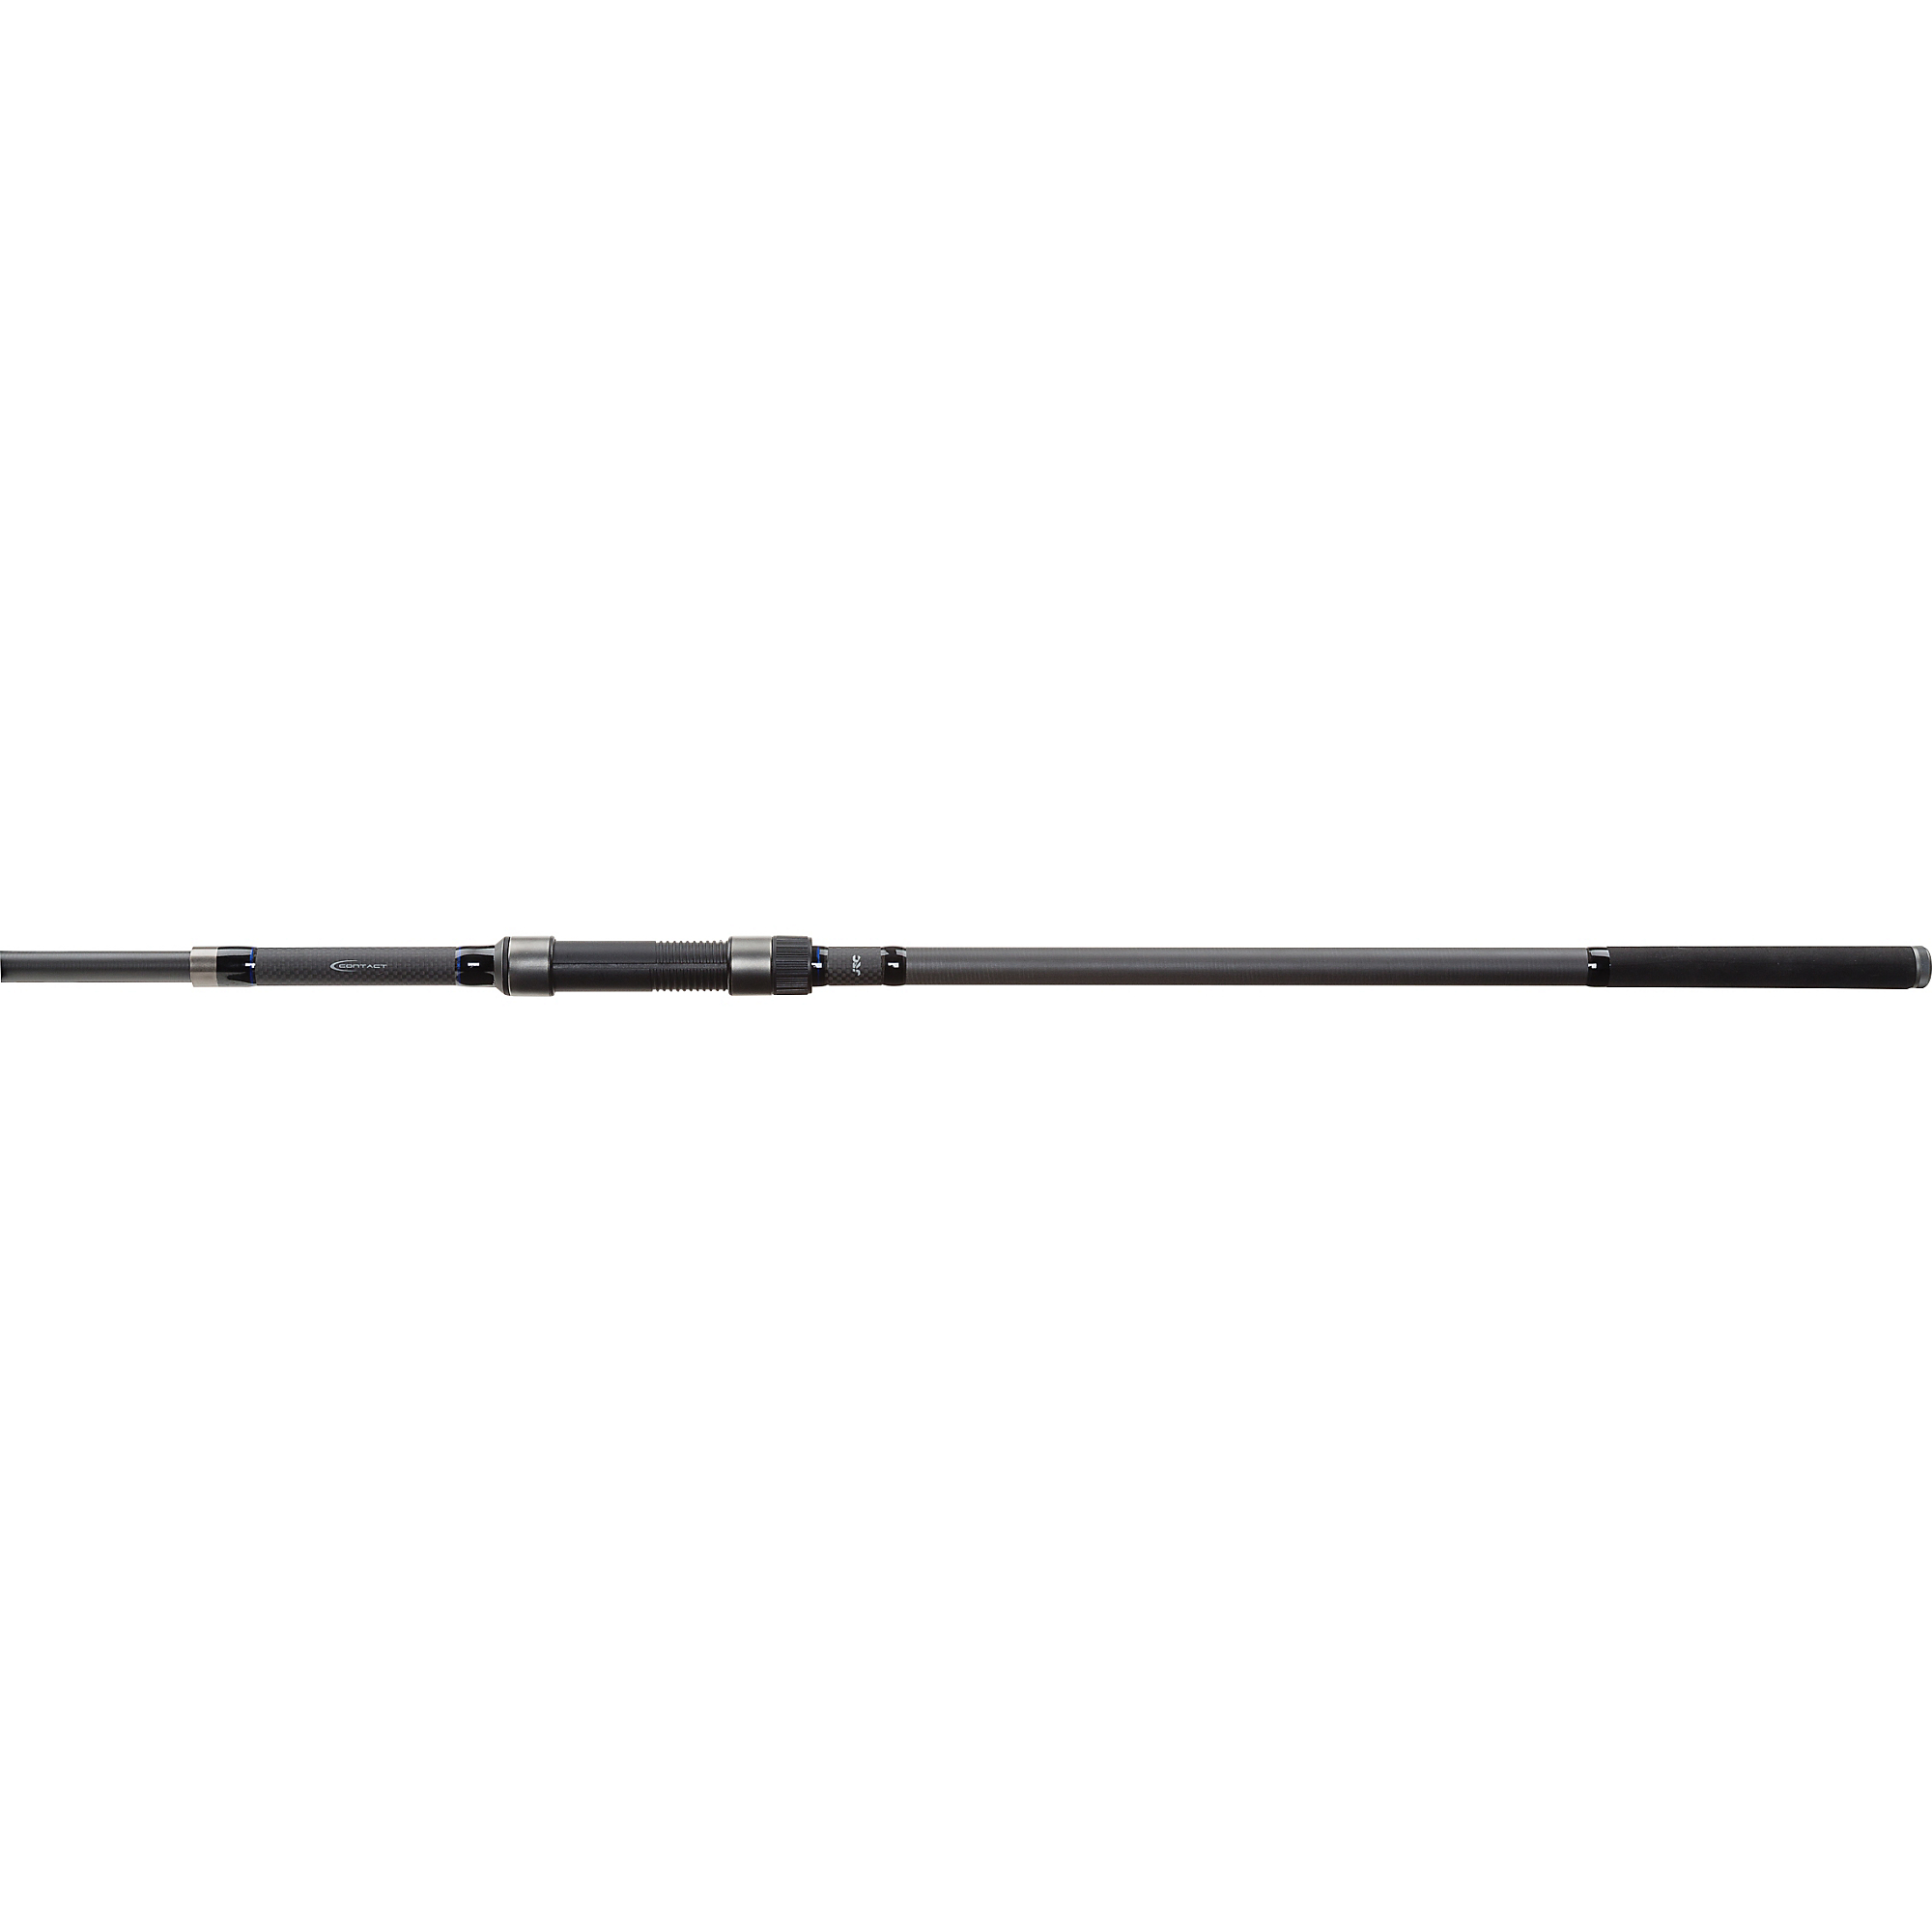 JRC® Contact Telescopic Rods 11ft, 3lb